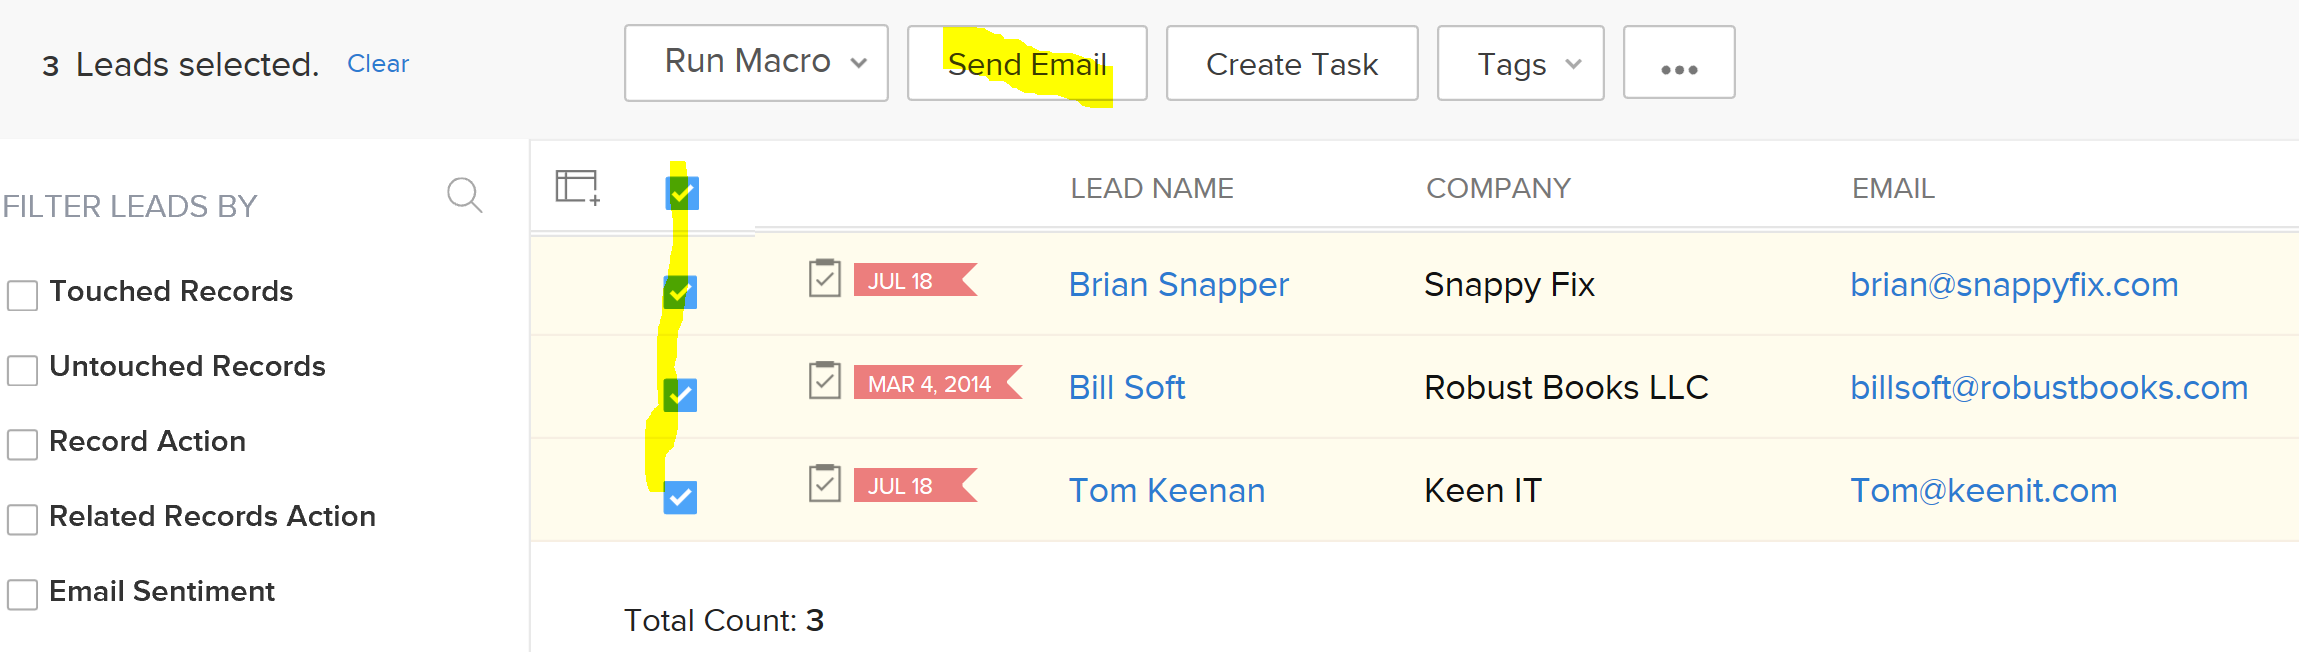 Mass emails going to junk folder but individual emails go to